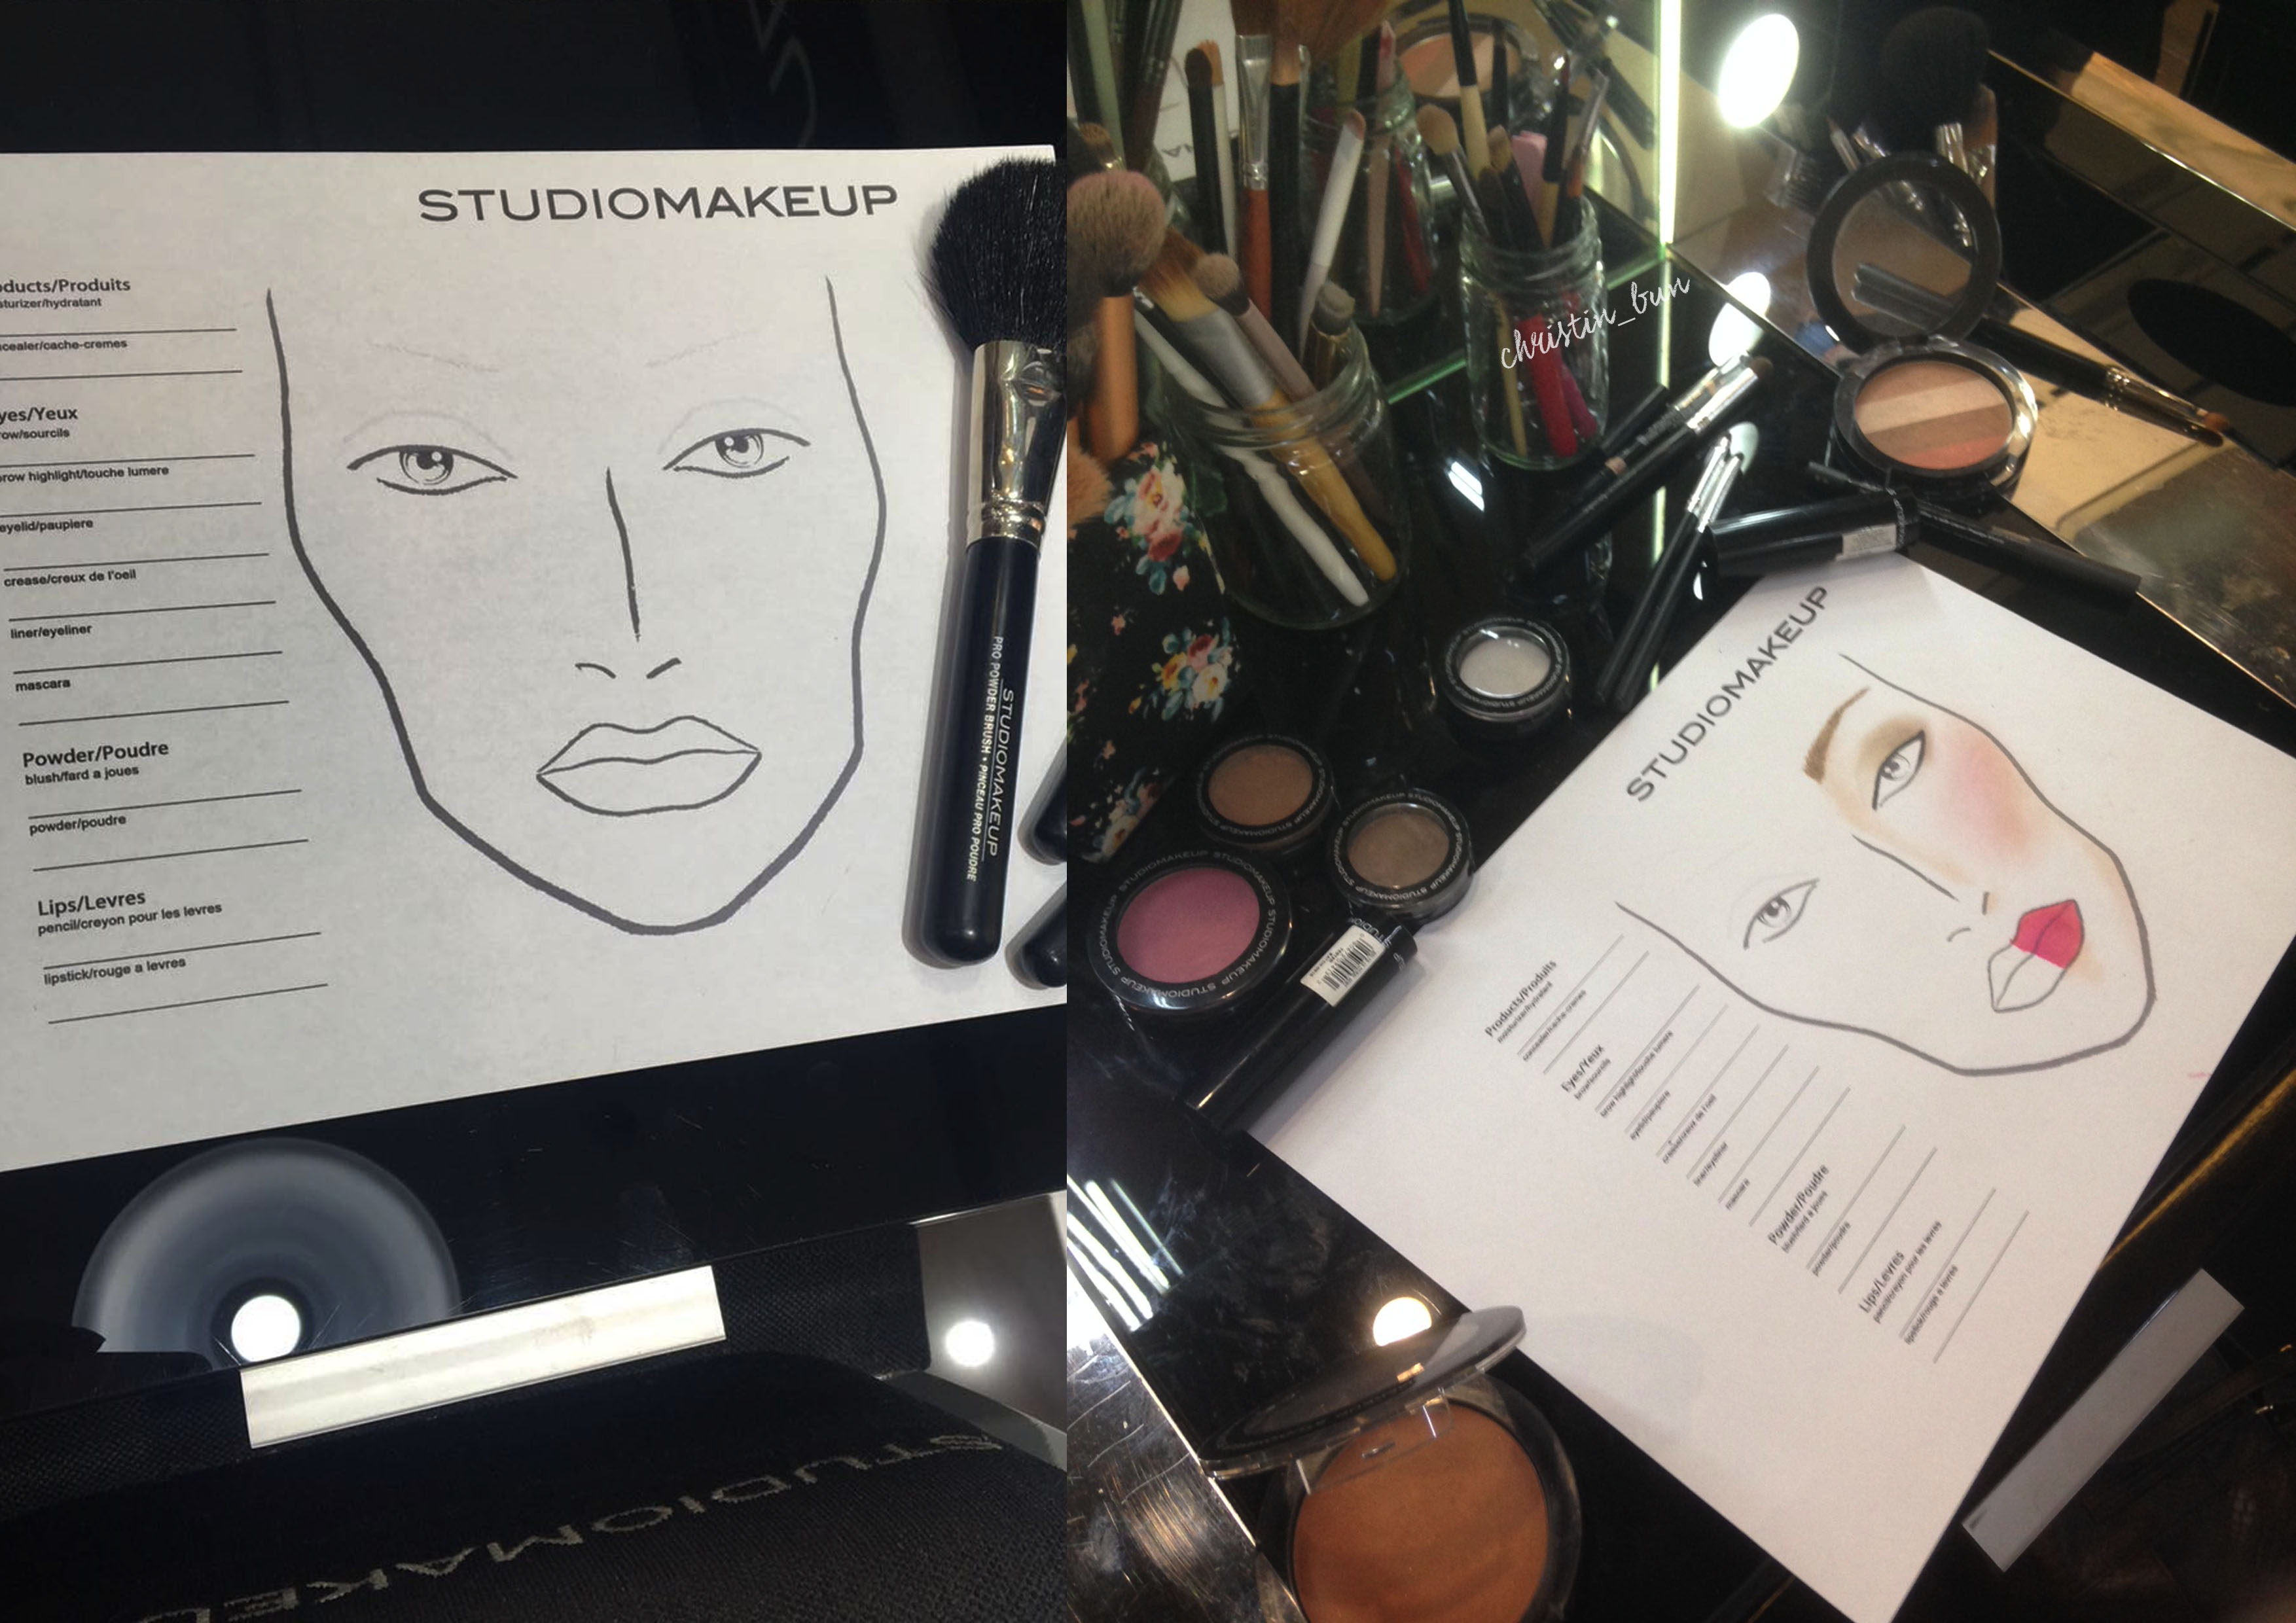 Event Report: Studiomakeup One on One @PVJ